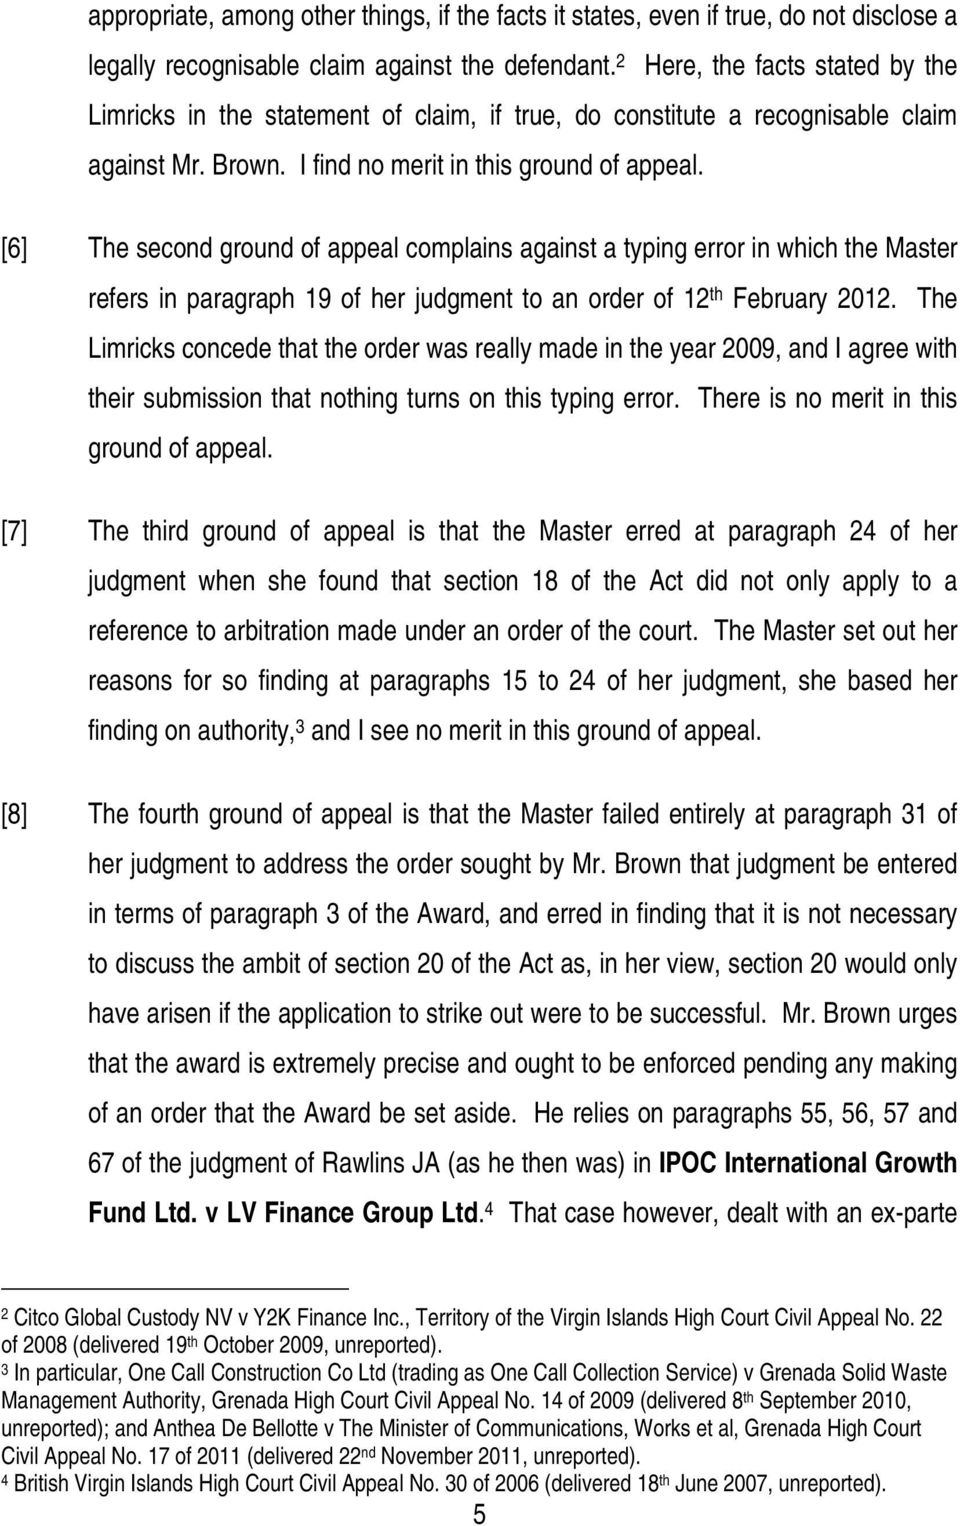 [6] The second ground of appeal complains against a typing error in which the Master refers in paragraph 19 of her judgment to an order of 12 th February 2012.